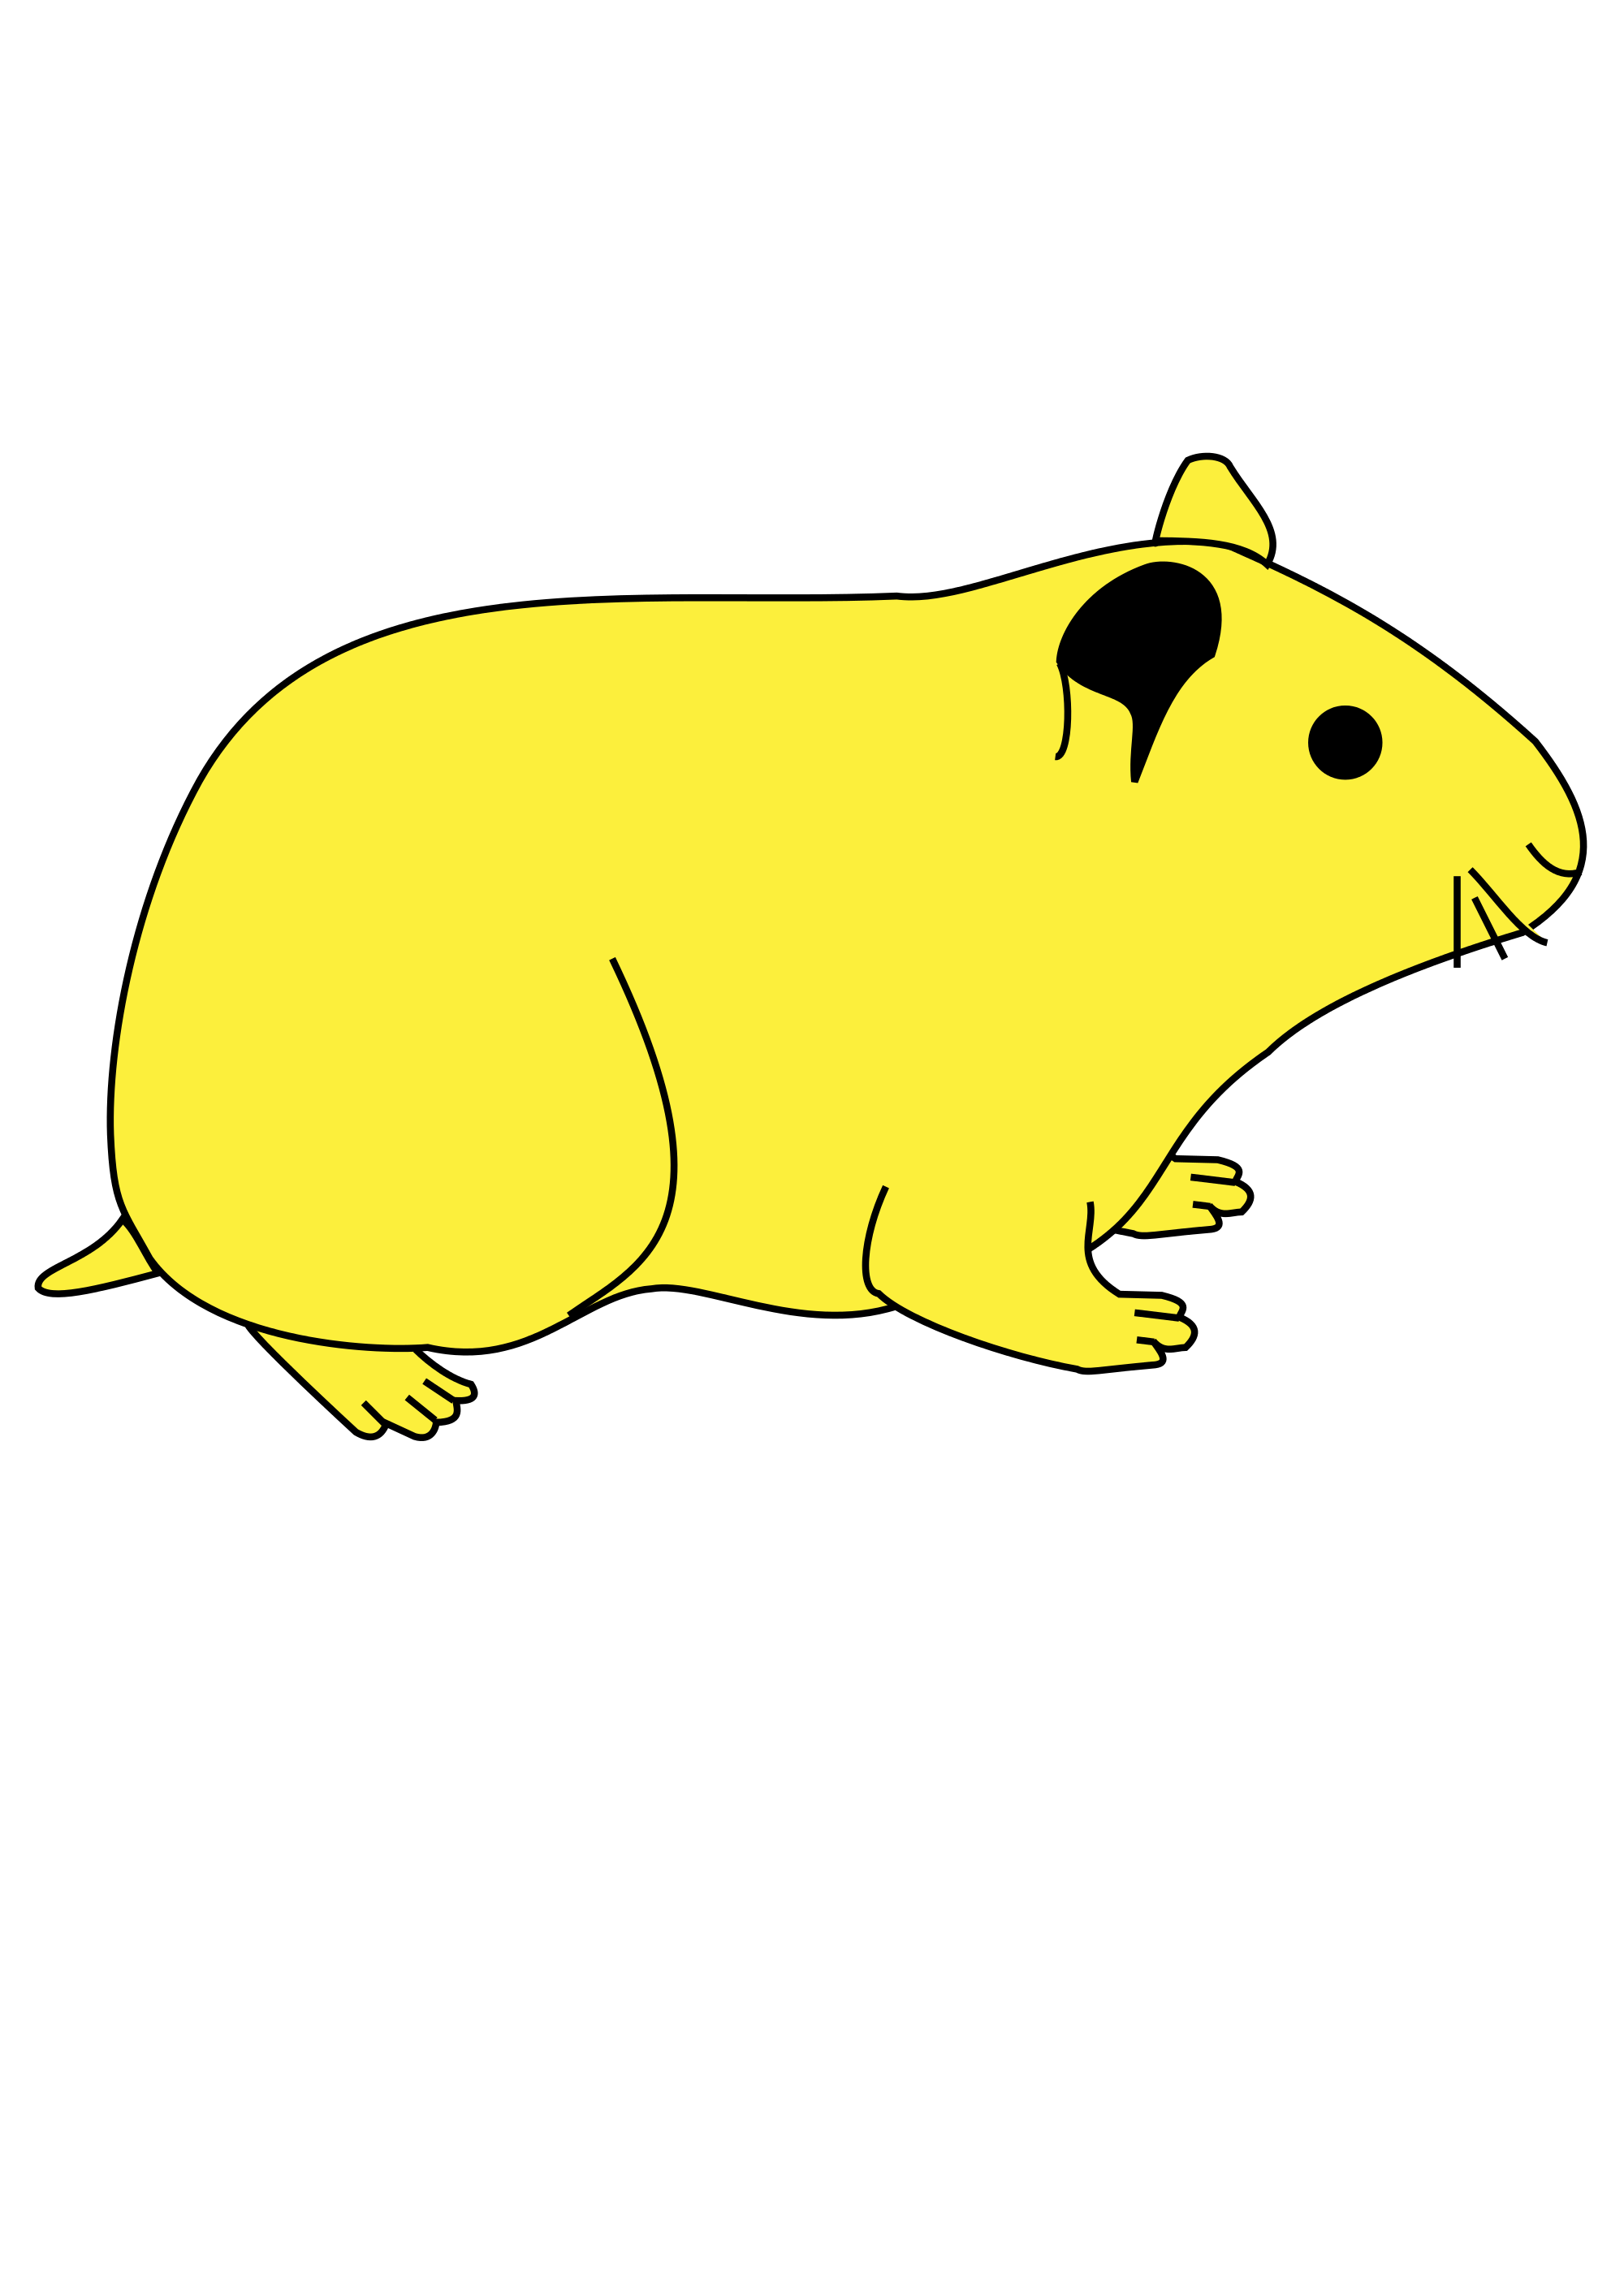 Hamster svg #10, Download drawings